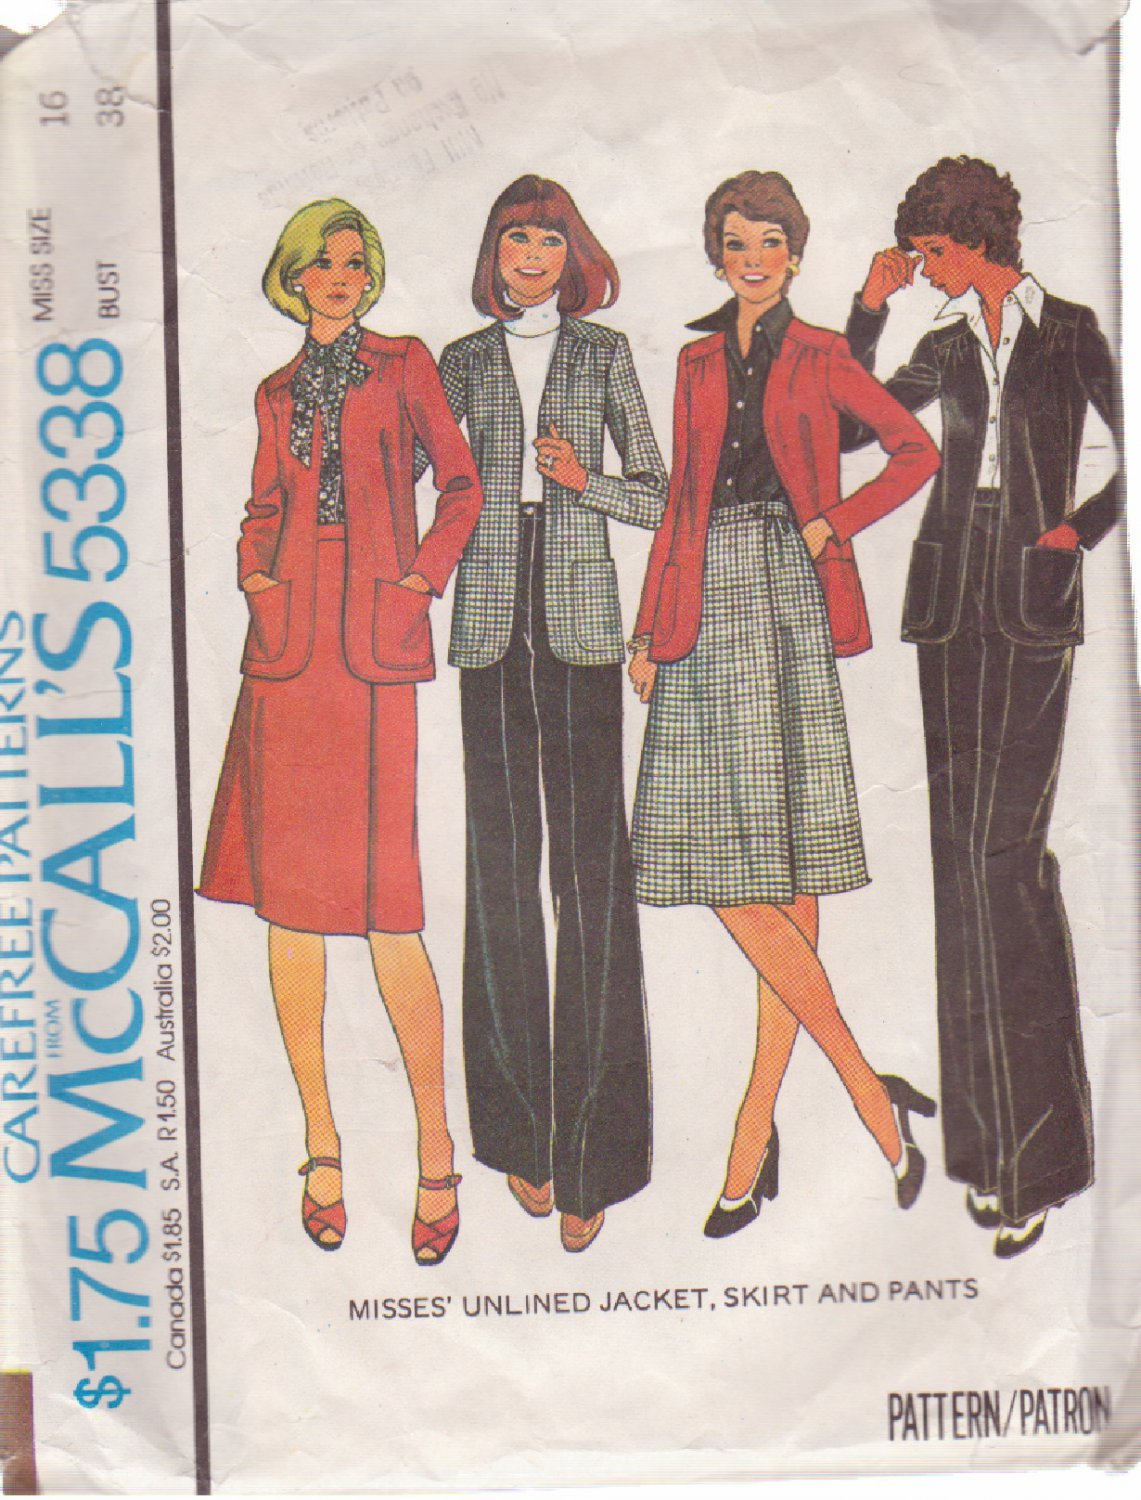 McCALL'S 1976 PATTERN 5338 SIZE 16 MISSES' JACKET, SKIRT & PANTS